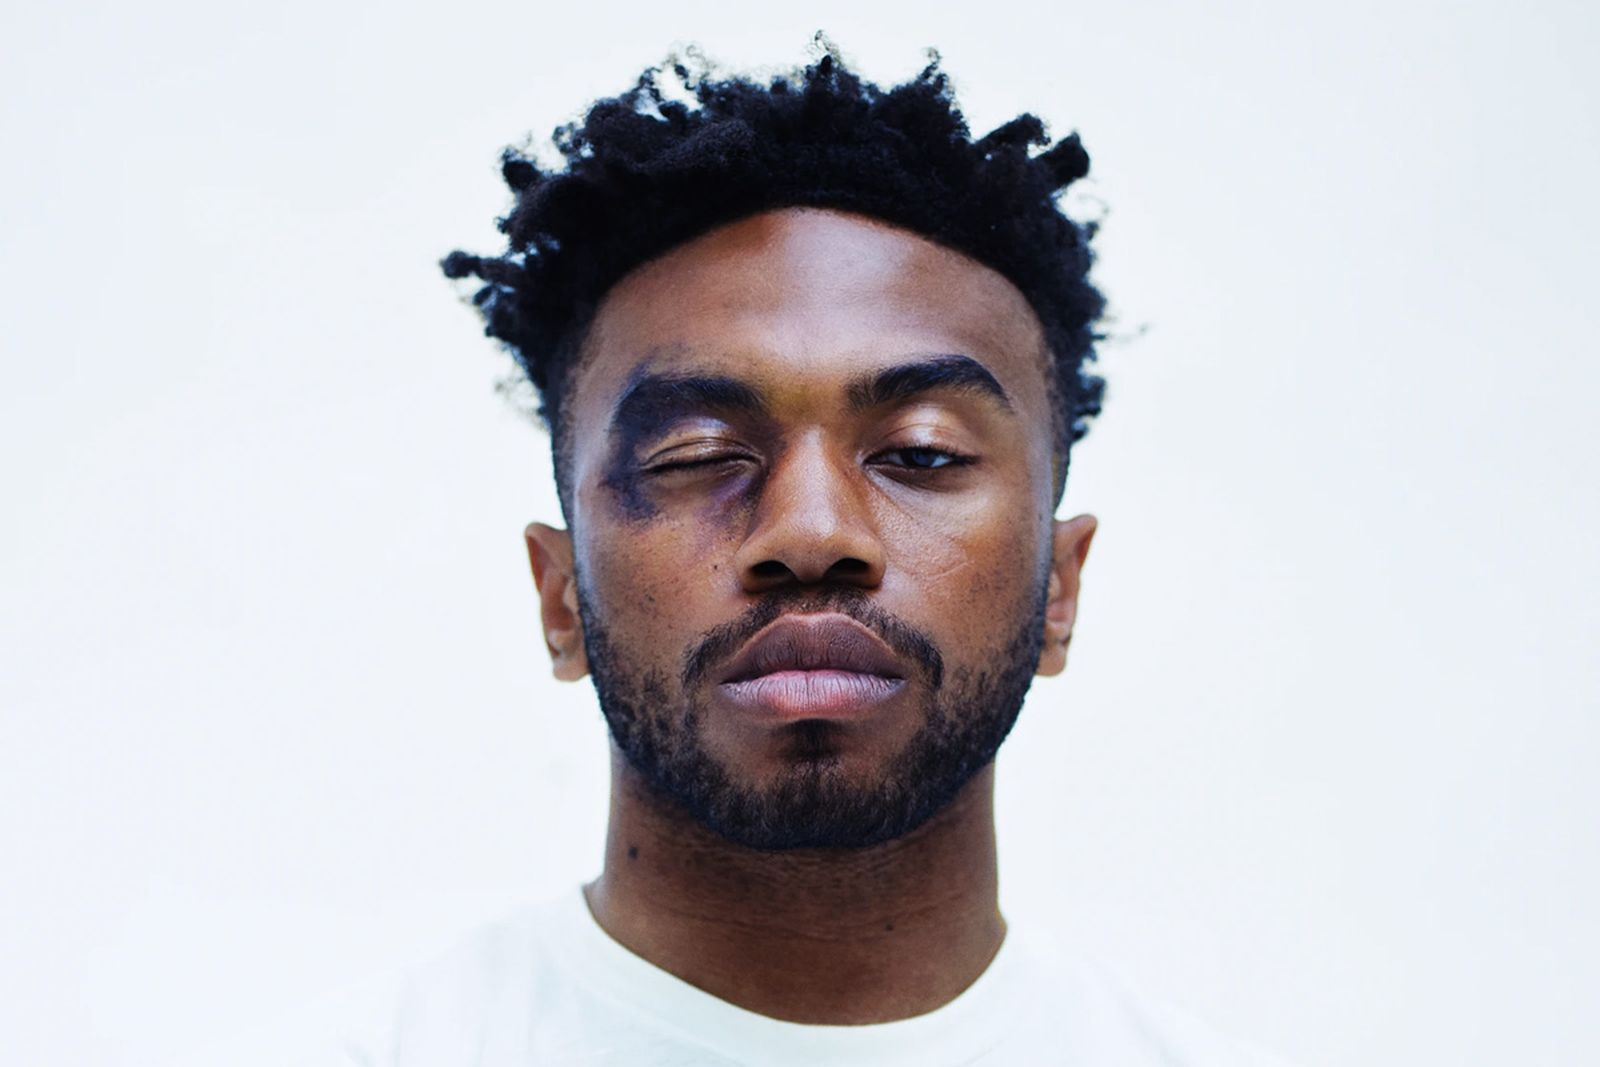 kevin abstract therapy main Shia LaBeouf i-D magazine